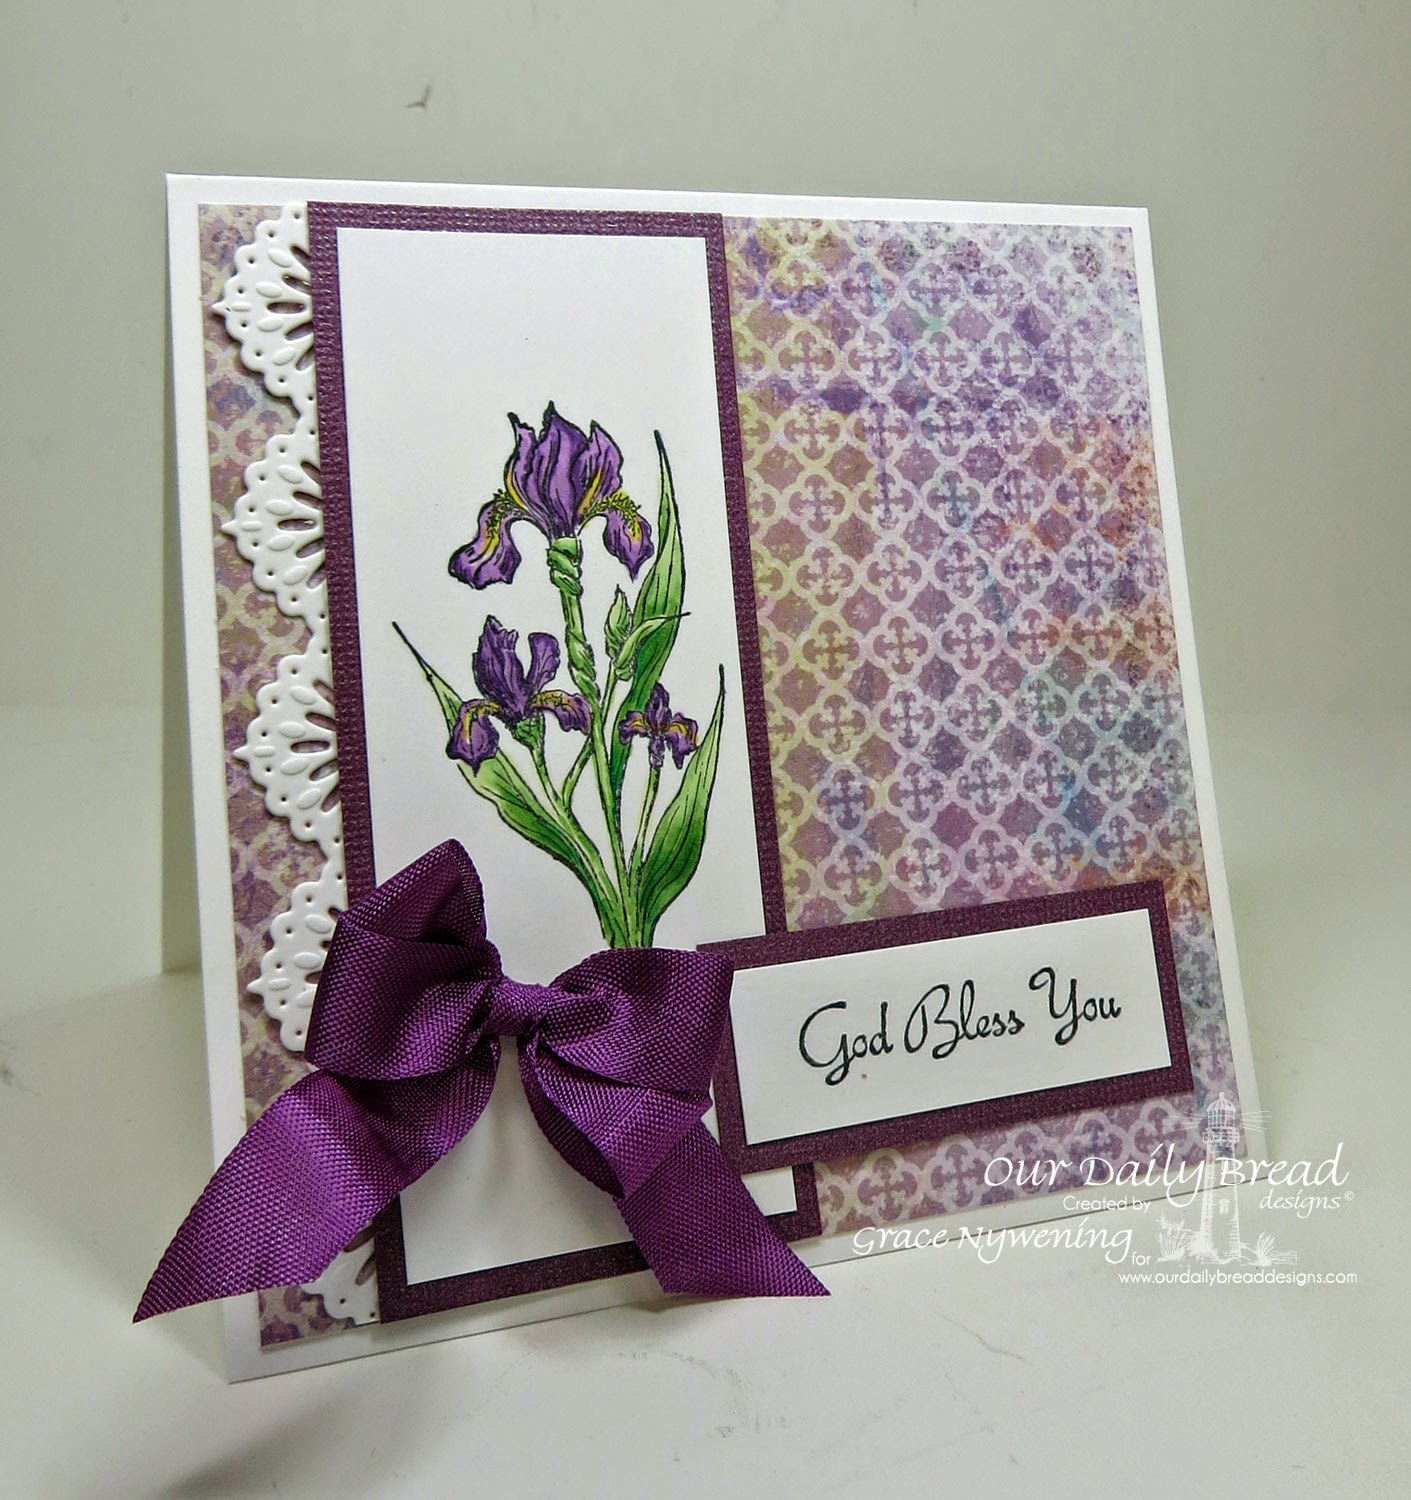 Our Daily Bread designs stamps: Iris, Rose, ODBD Christian Faith Paper Collection, ODBD Beautiful Border dies, designed by Grace Nywening